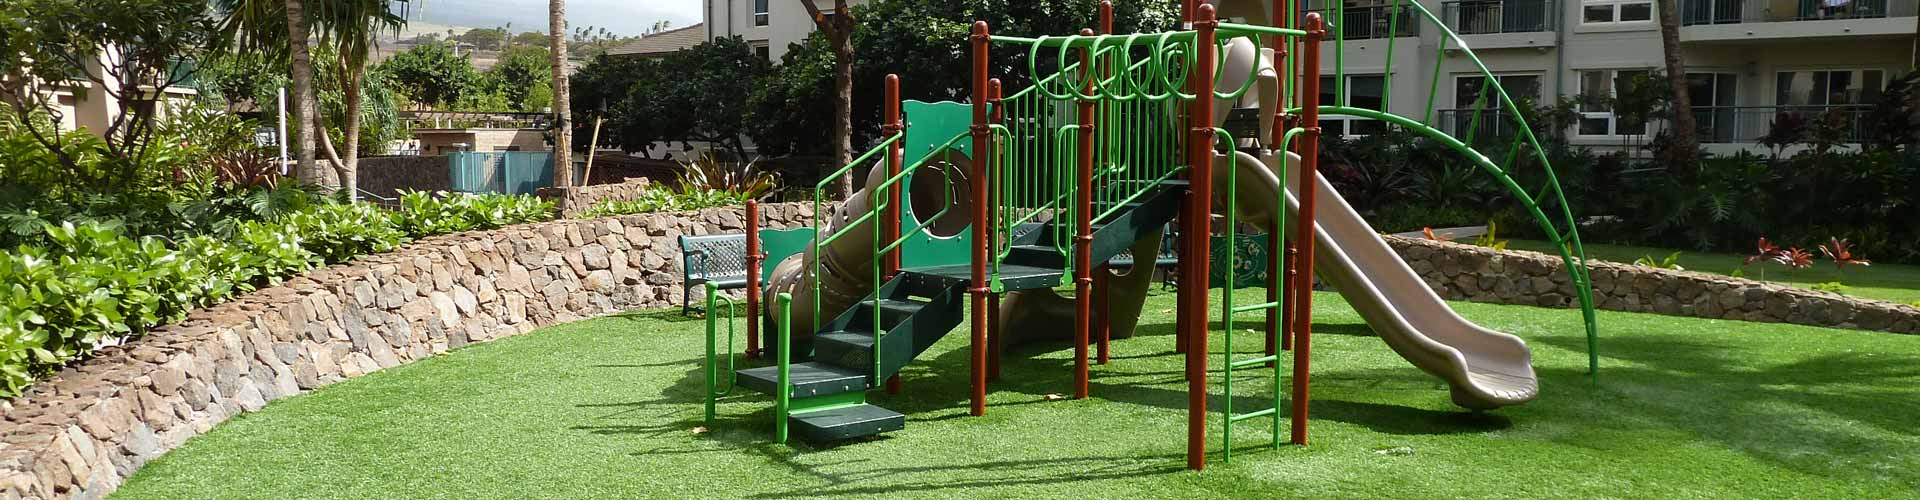 Synthetic turf playground grass by Southwest Greens of Hawaii